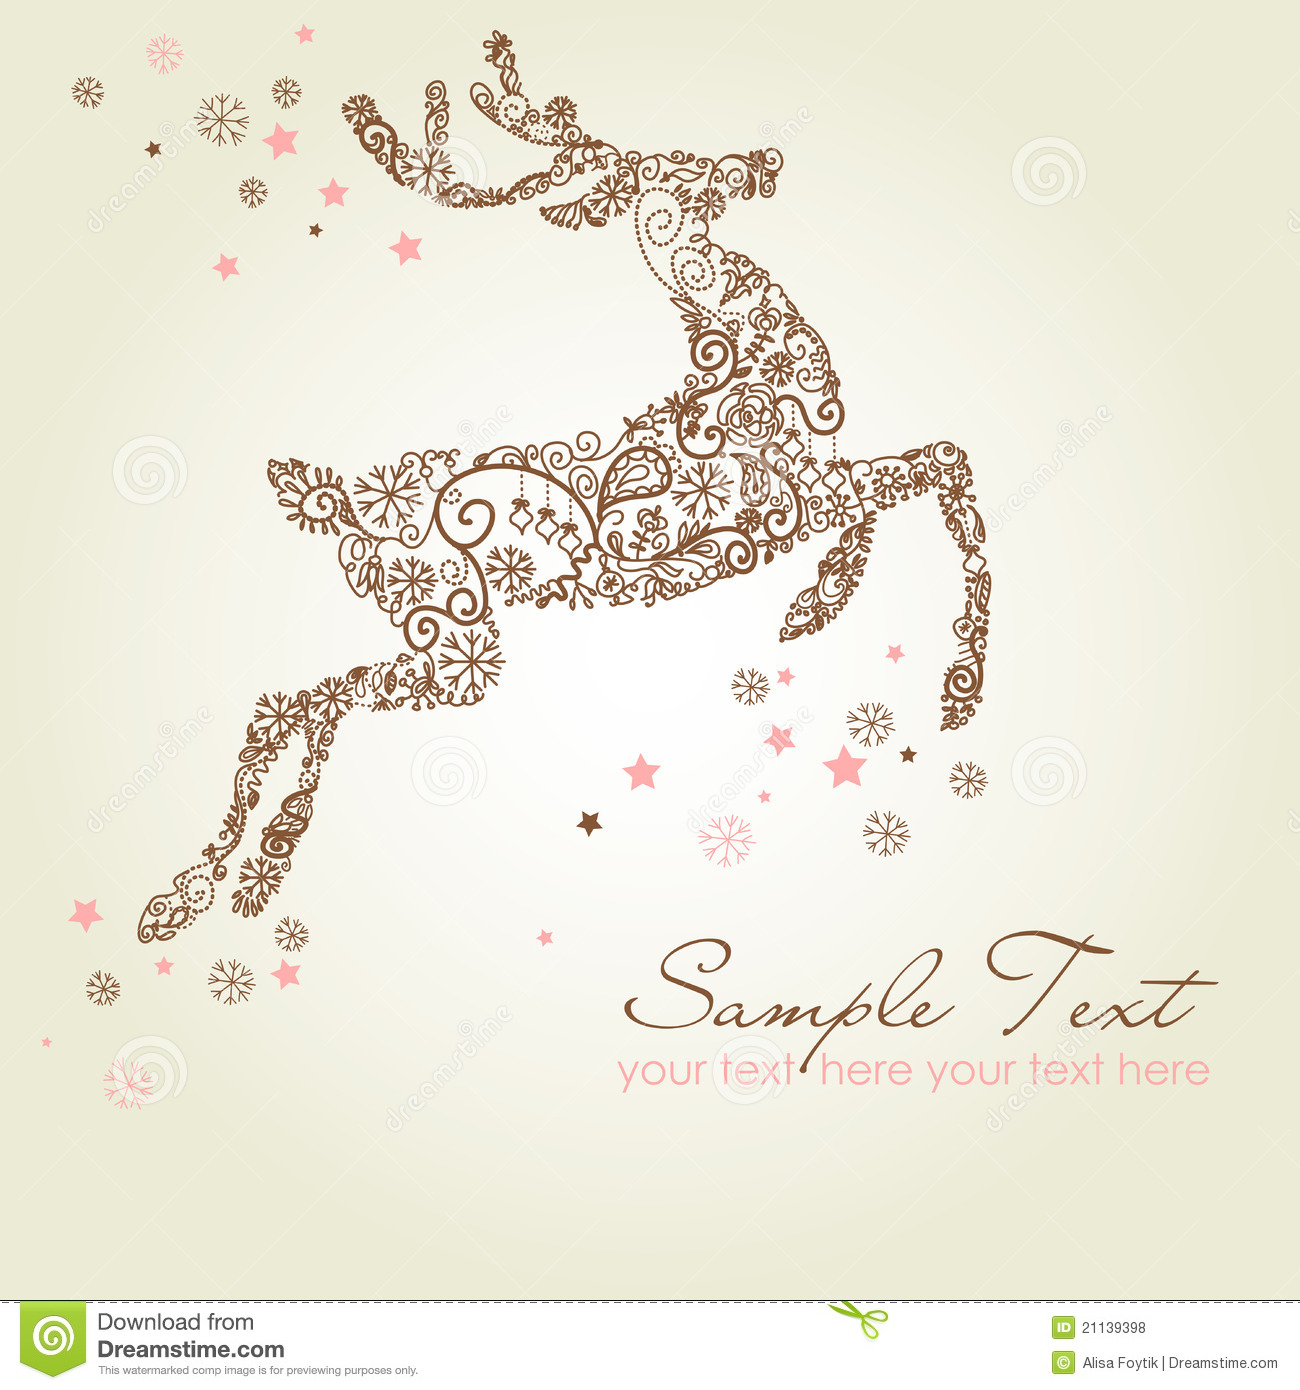 Christmas Card Reindeer Royalty Free Stock Photos - Image: 21139398